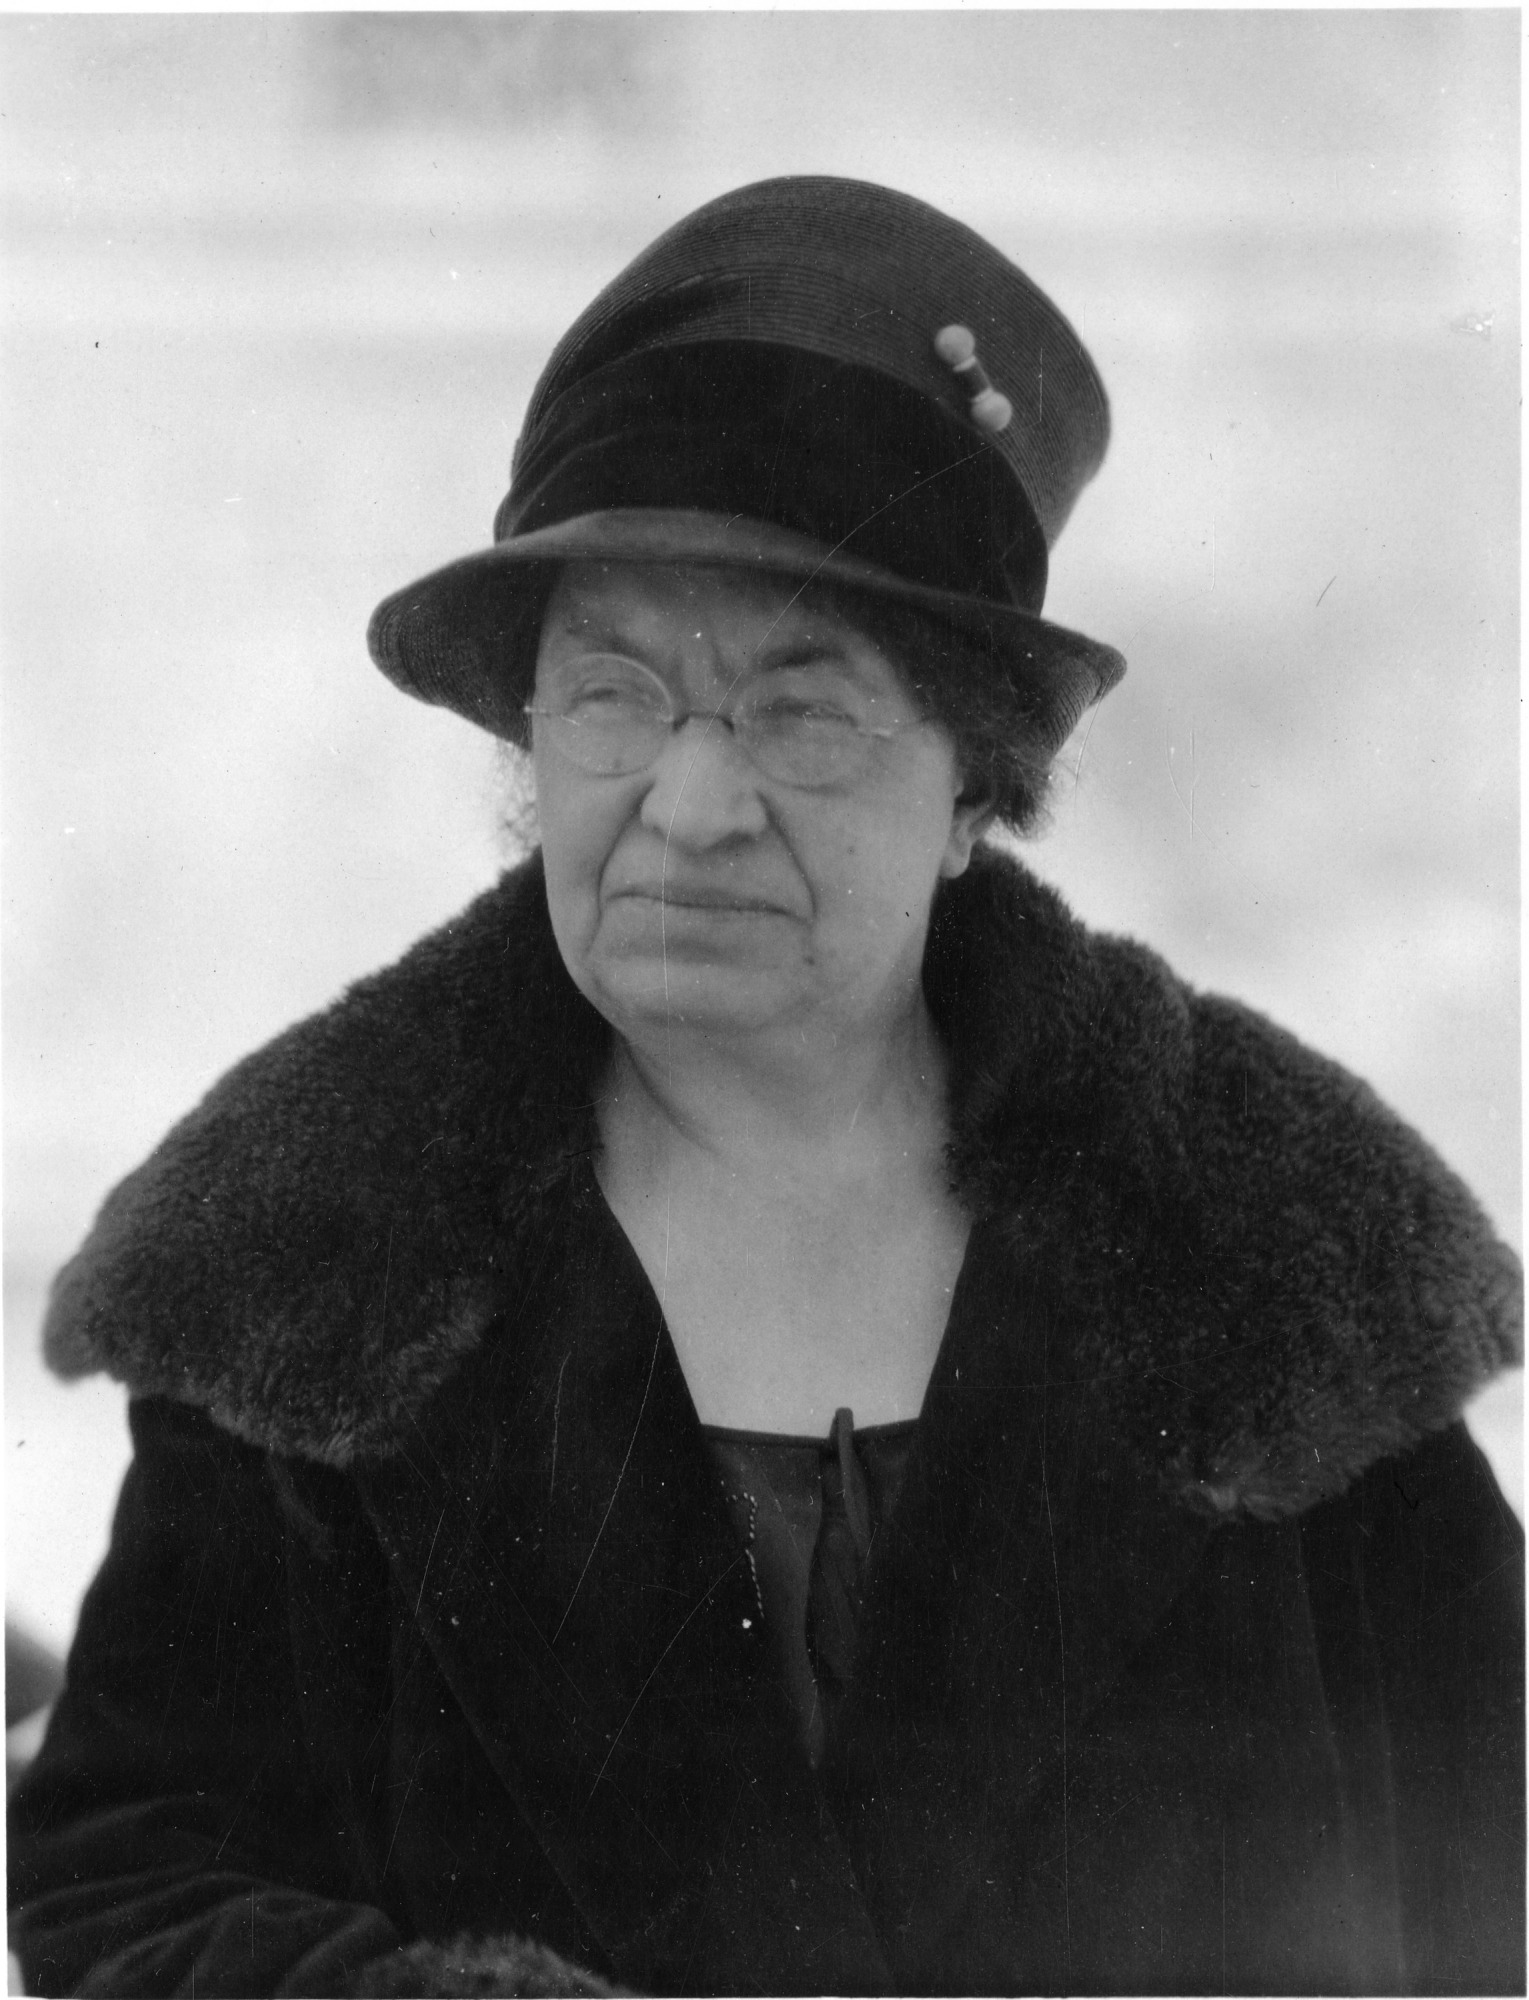 Florence Rena Sabin (1871-1953), Smithsonian Institution Archives, SIA Acc. 90-105 [SIA2009-2627].